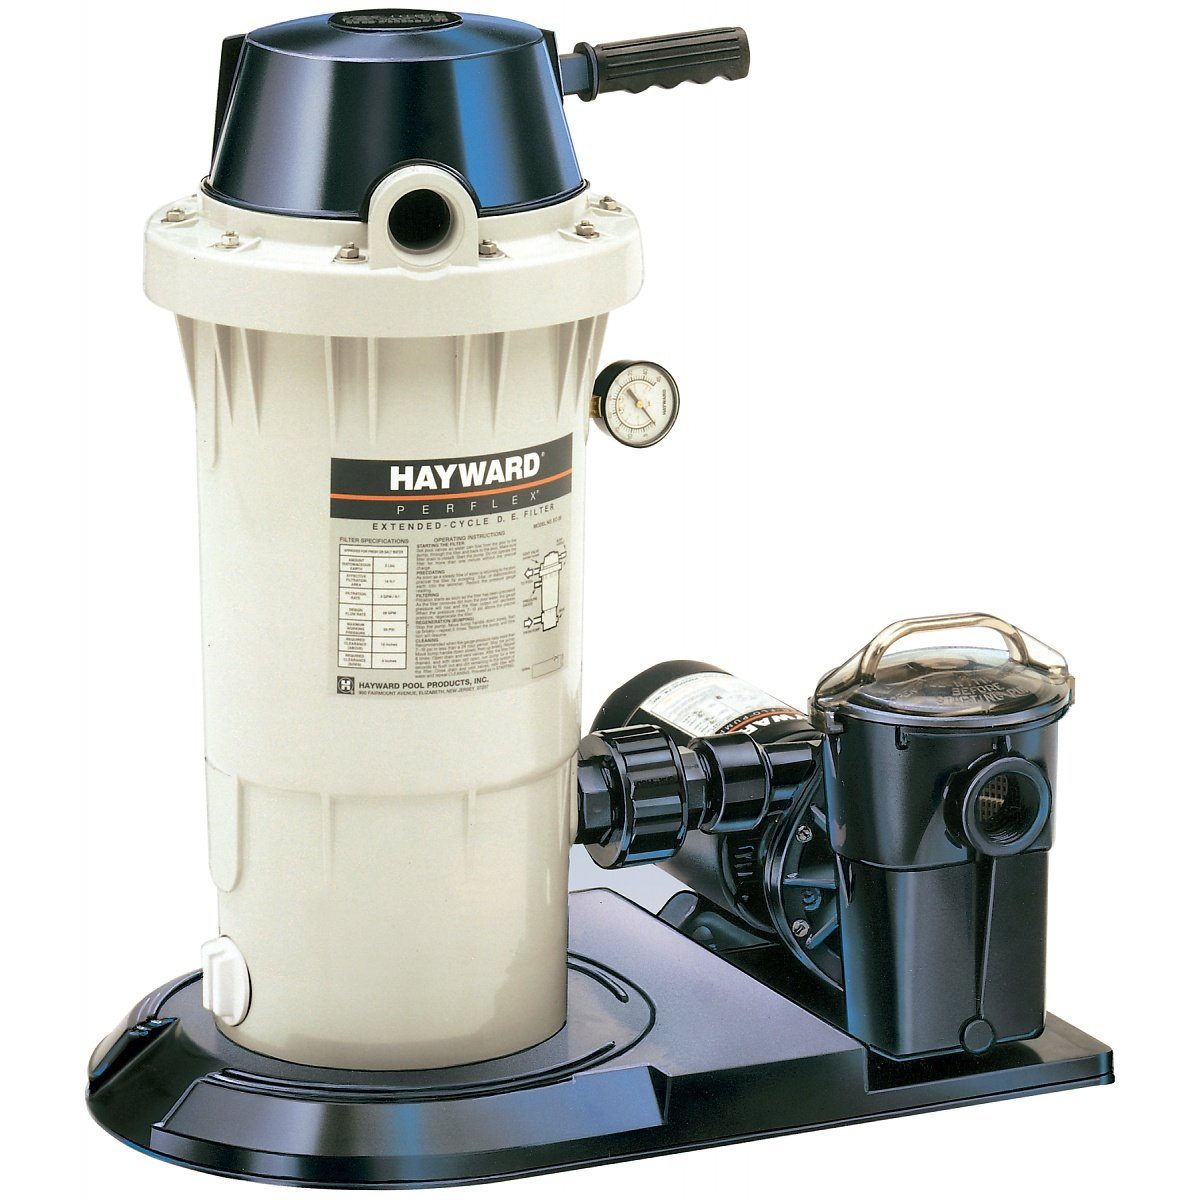 Force hook up hayward pool filter pump girls